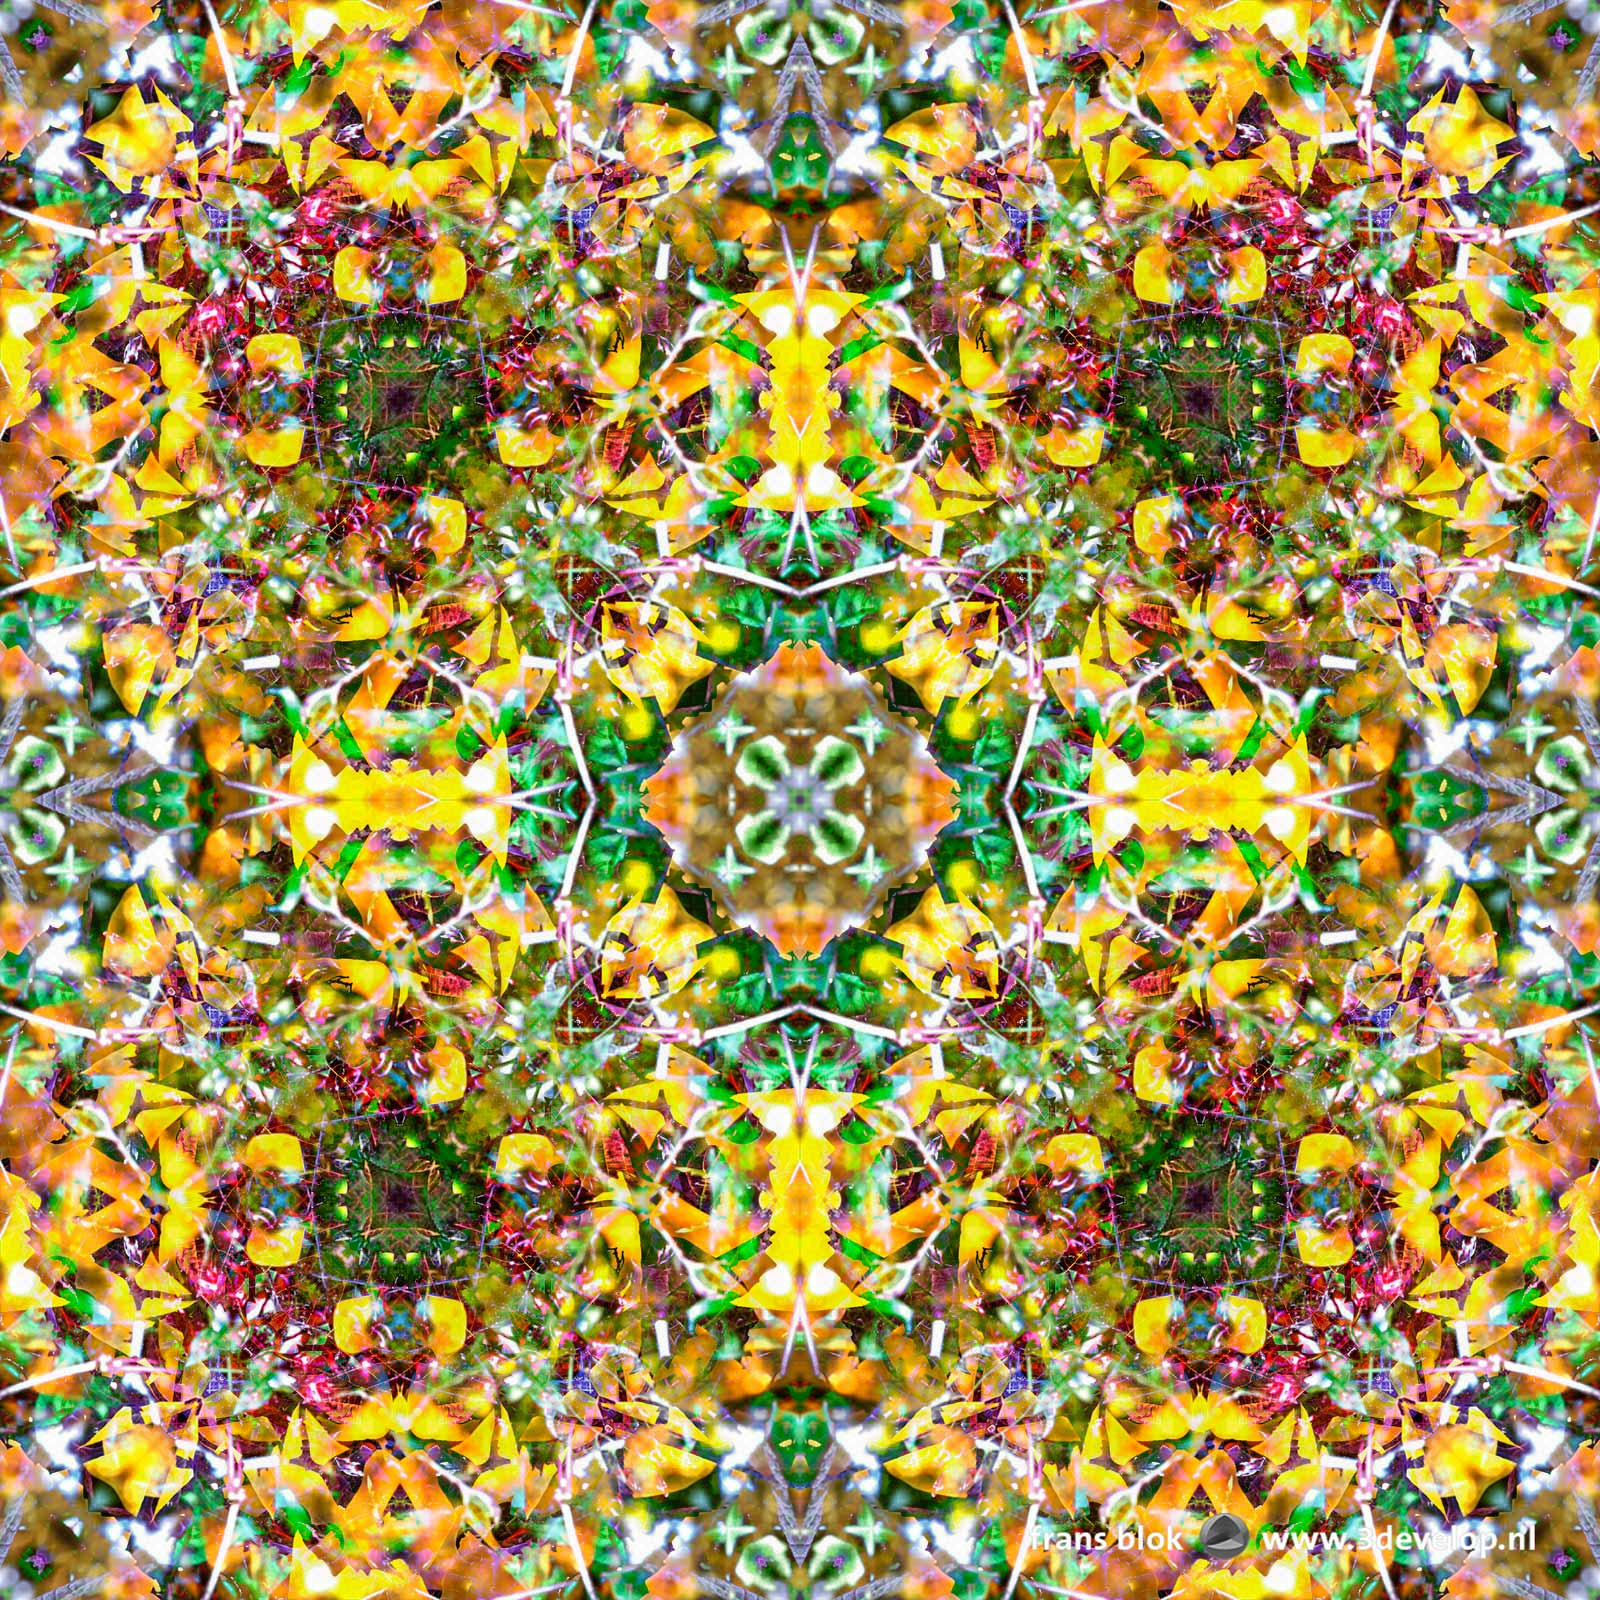 Colorful kaleidoscopic symmetric pattern made in Photoshop based on a photograph of a tree with red berries in autumn